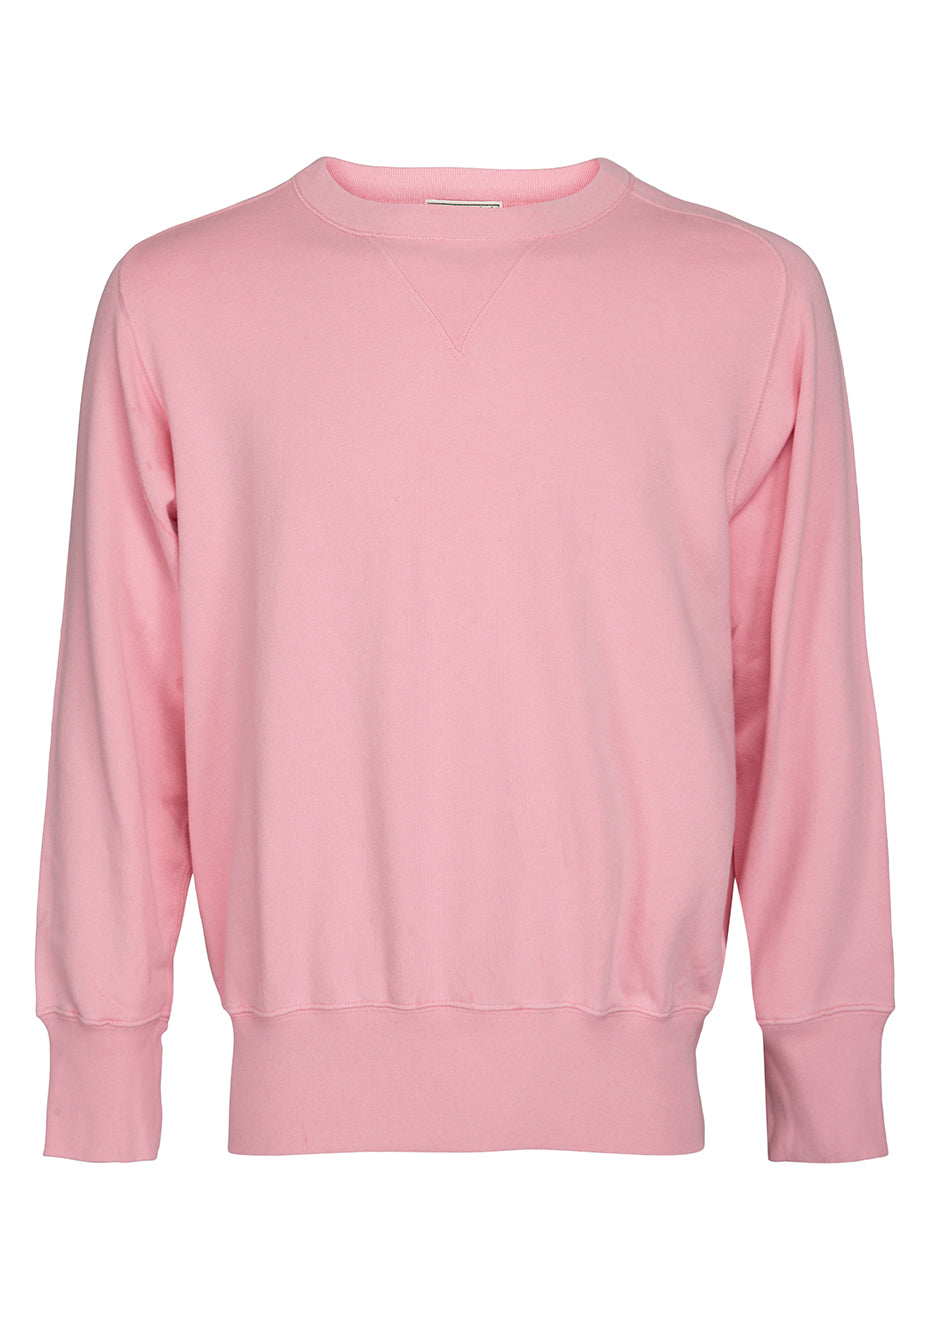 Candy Bay Meadows Sweatshirt